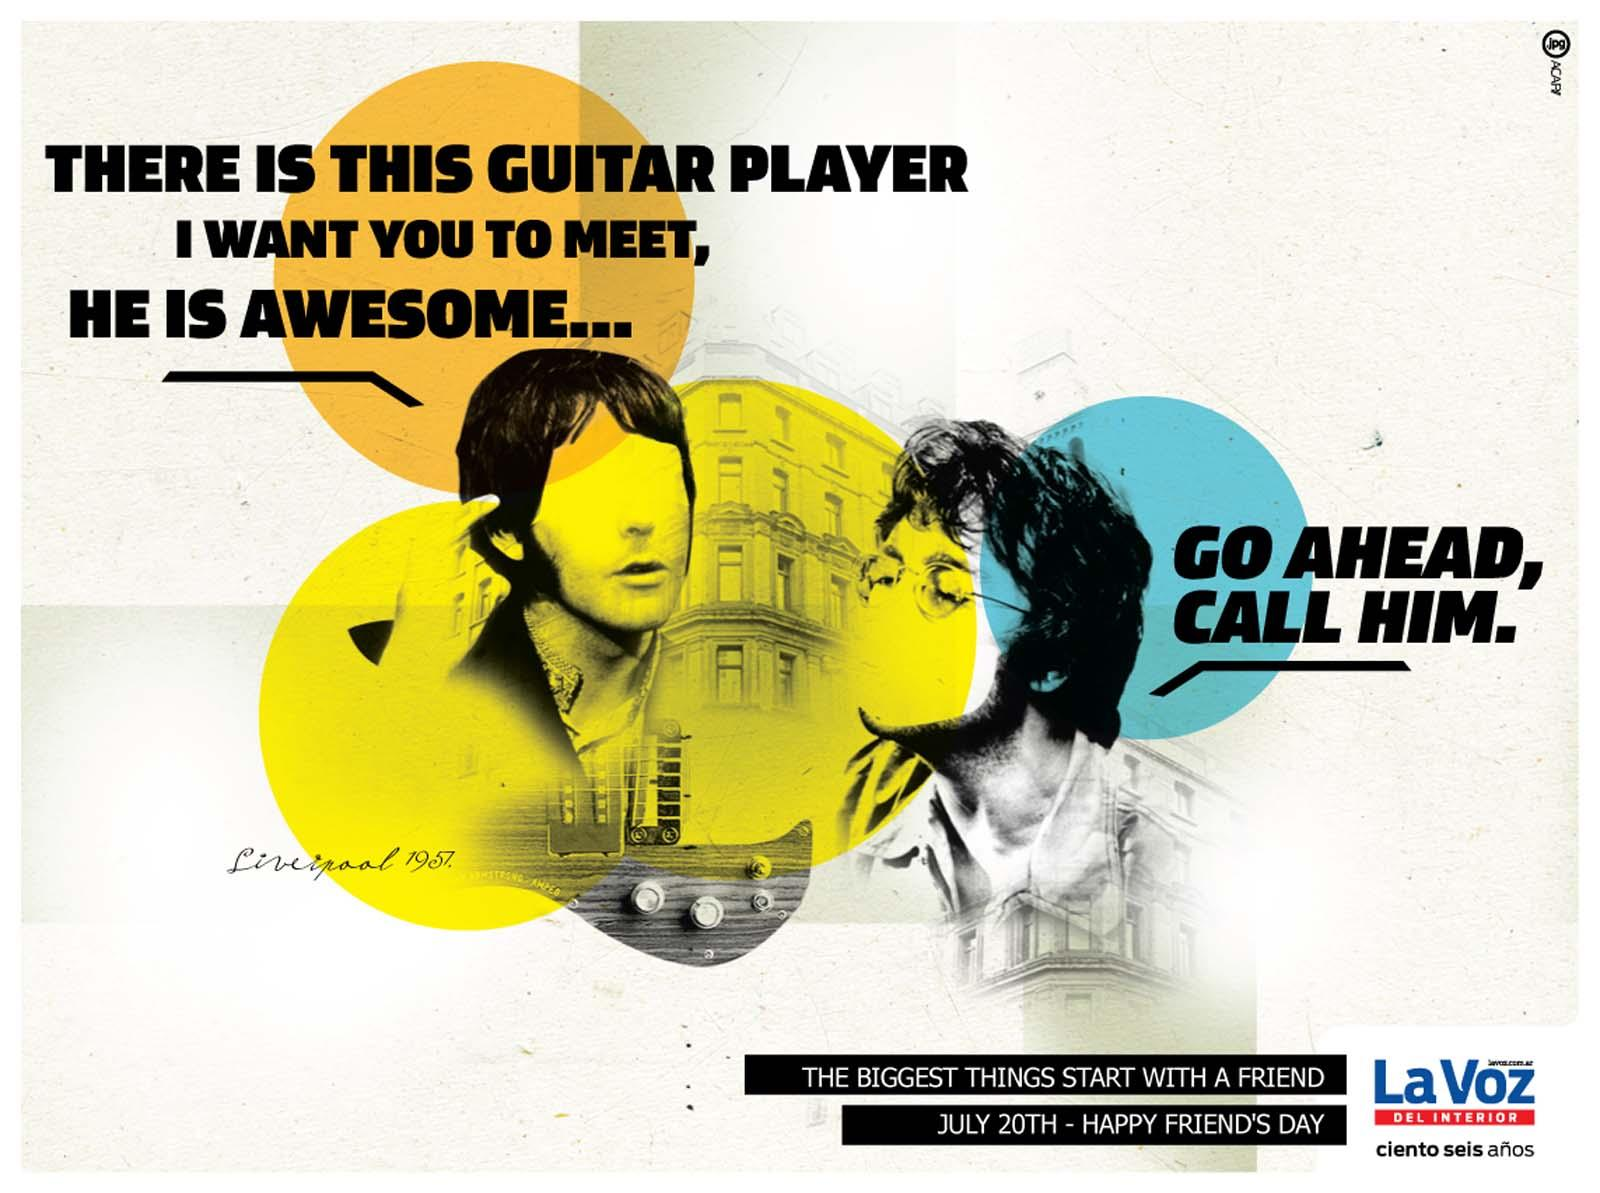 La Voz del Interior Print Ad -  Guitar Player